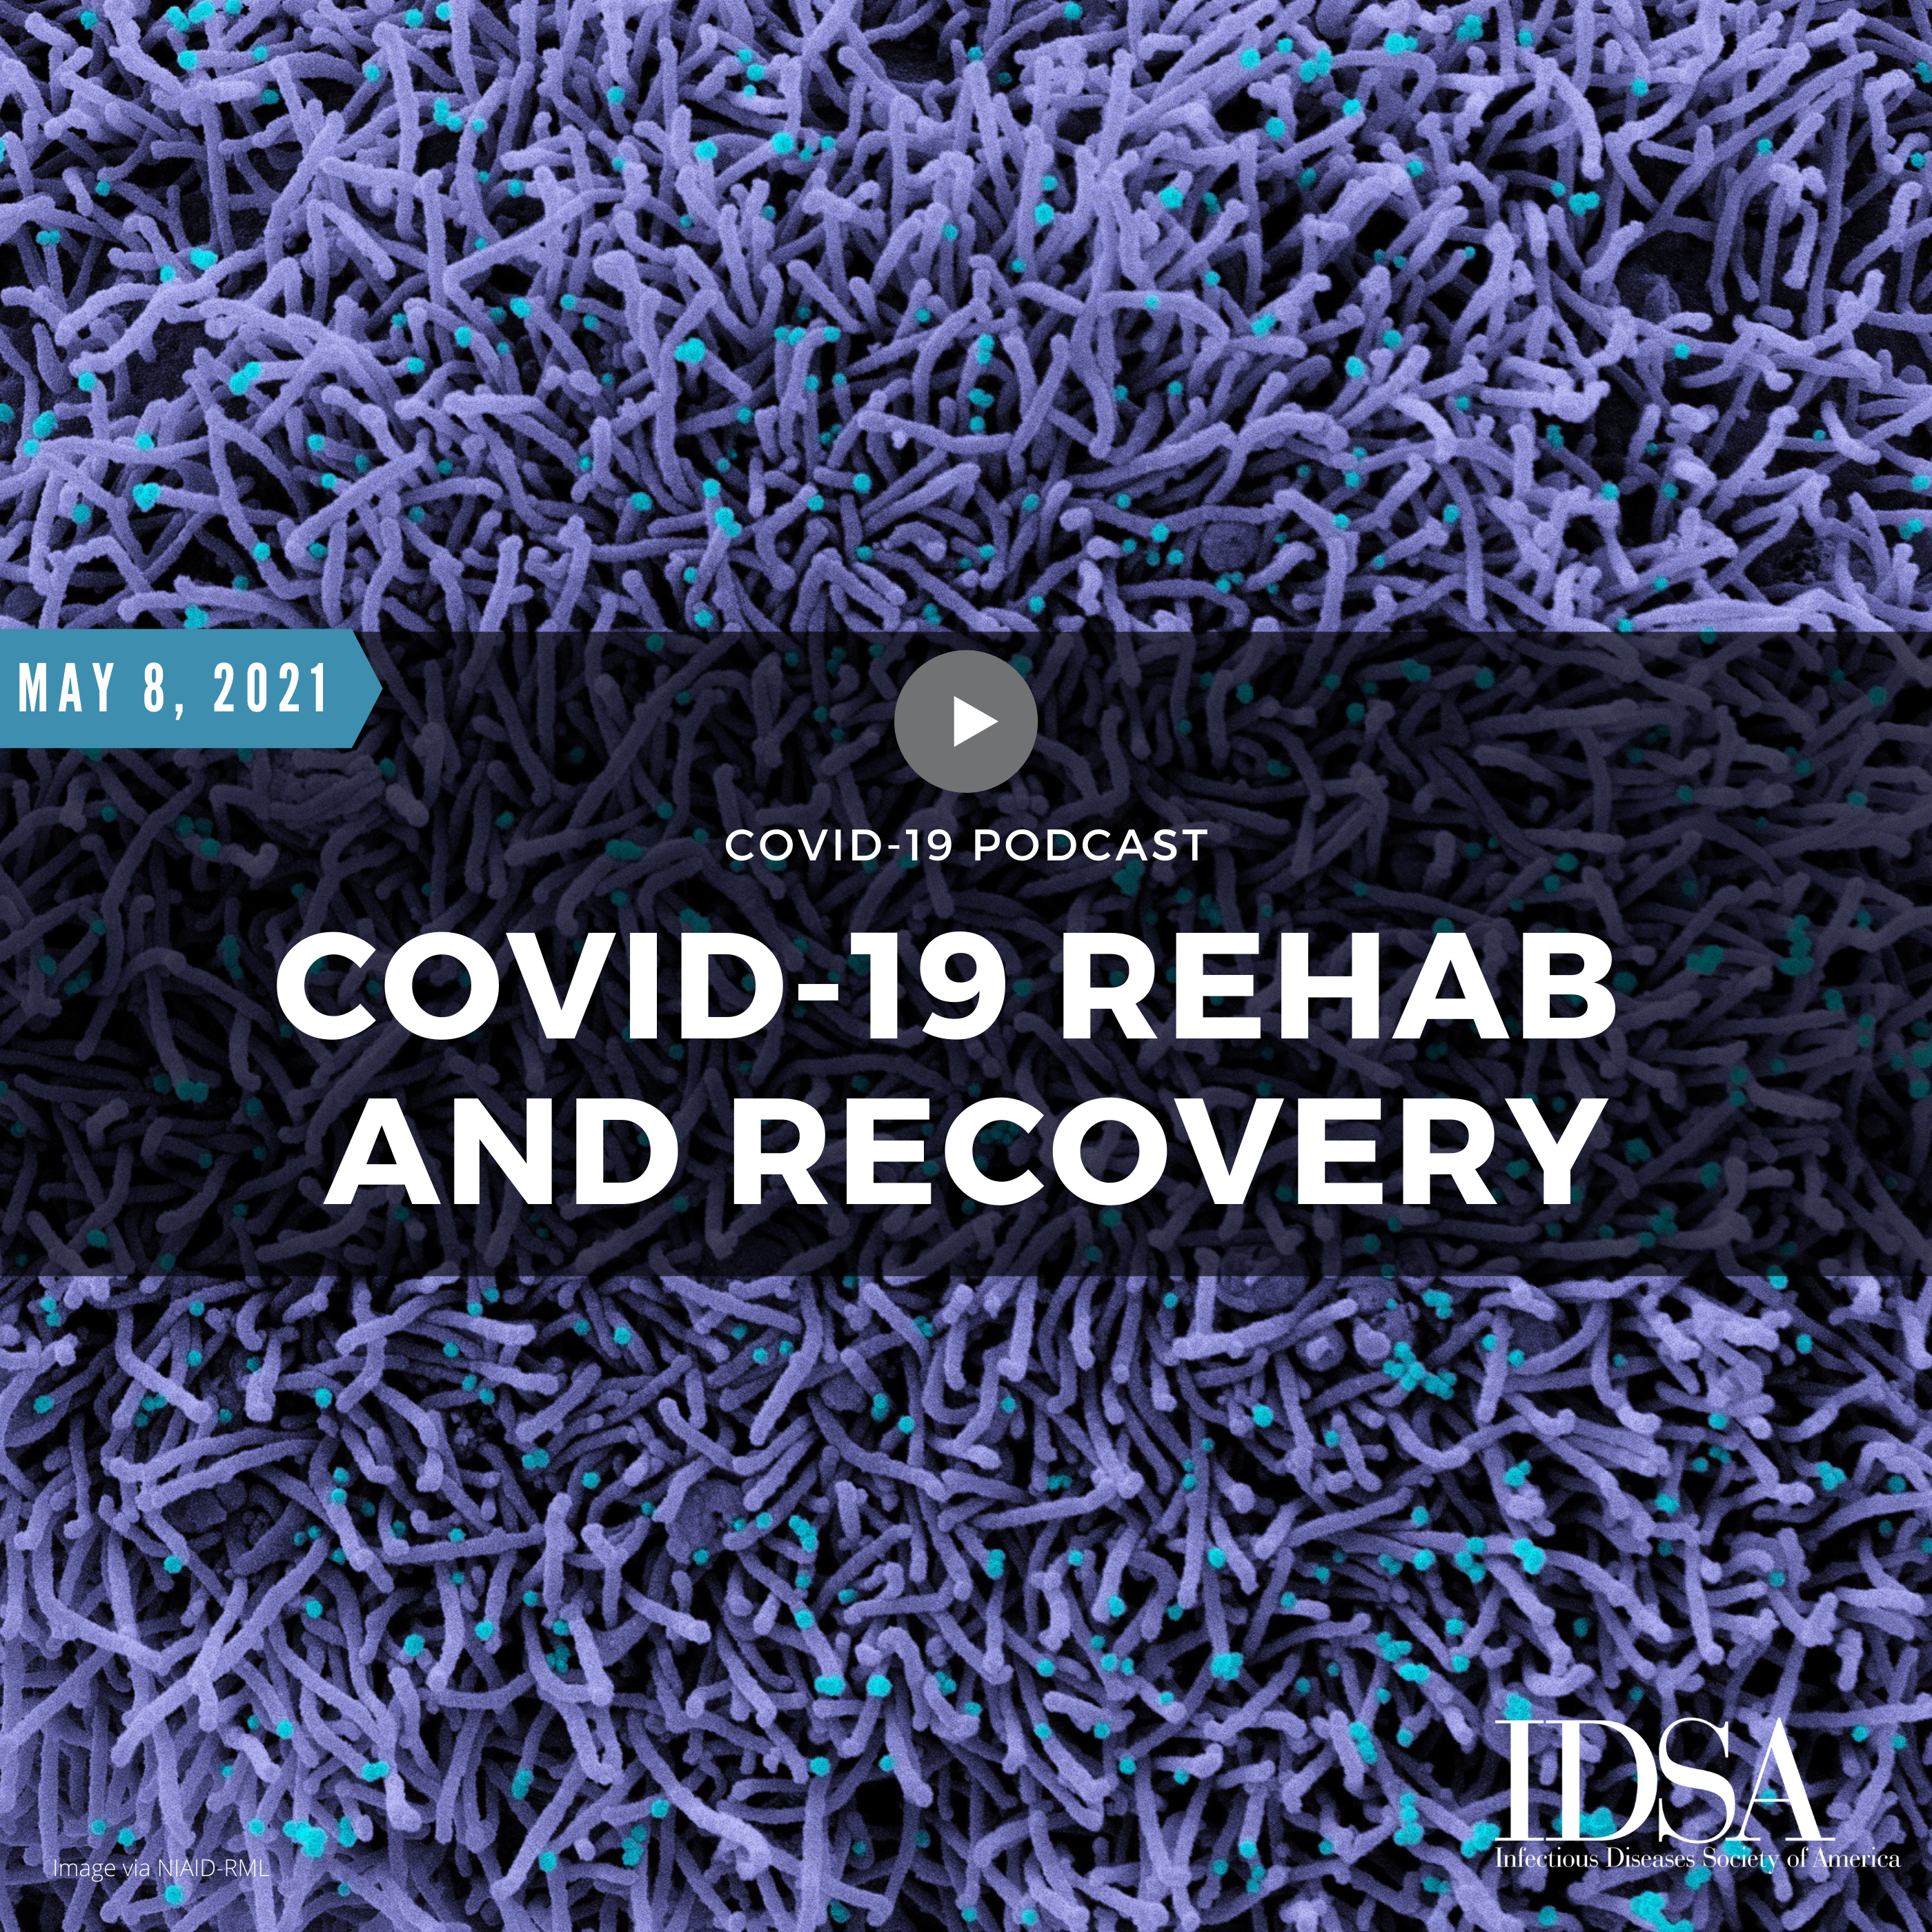 COVID-19: Rehab and Recovery (May 8, 2021)